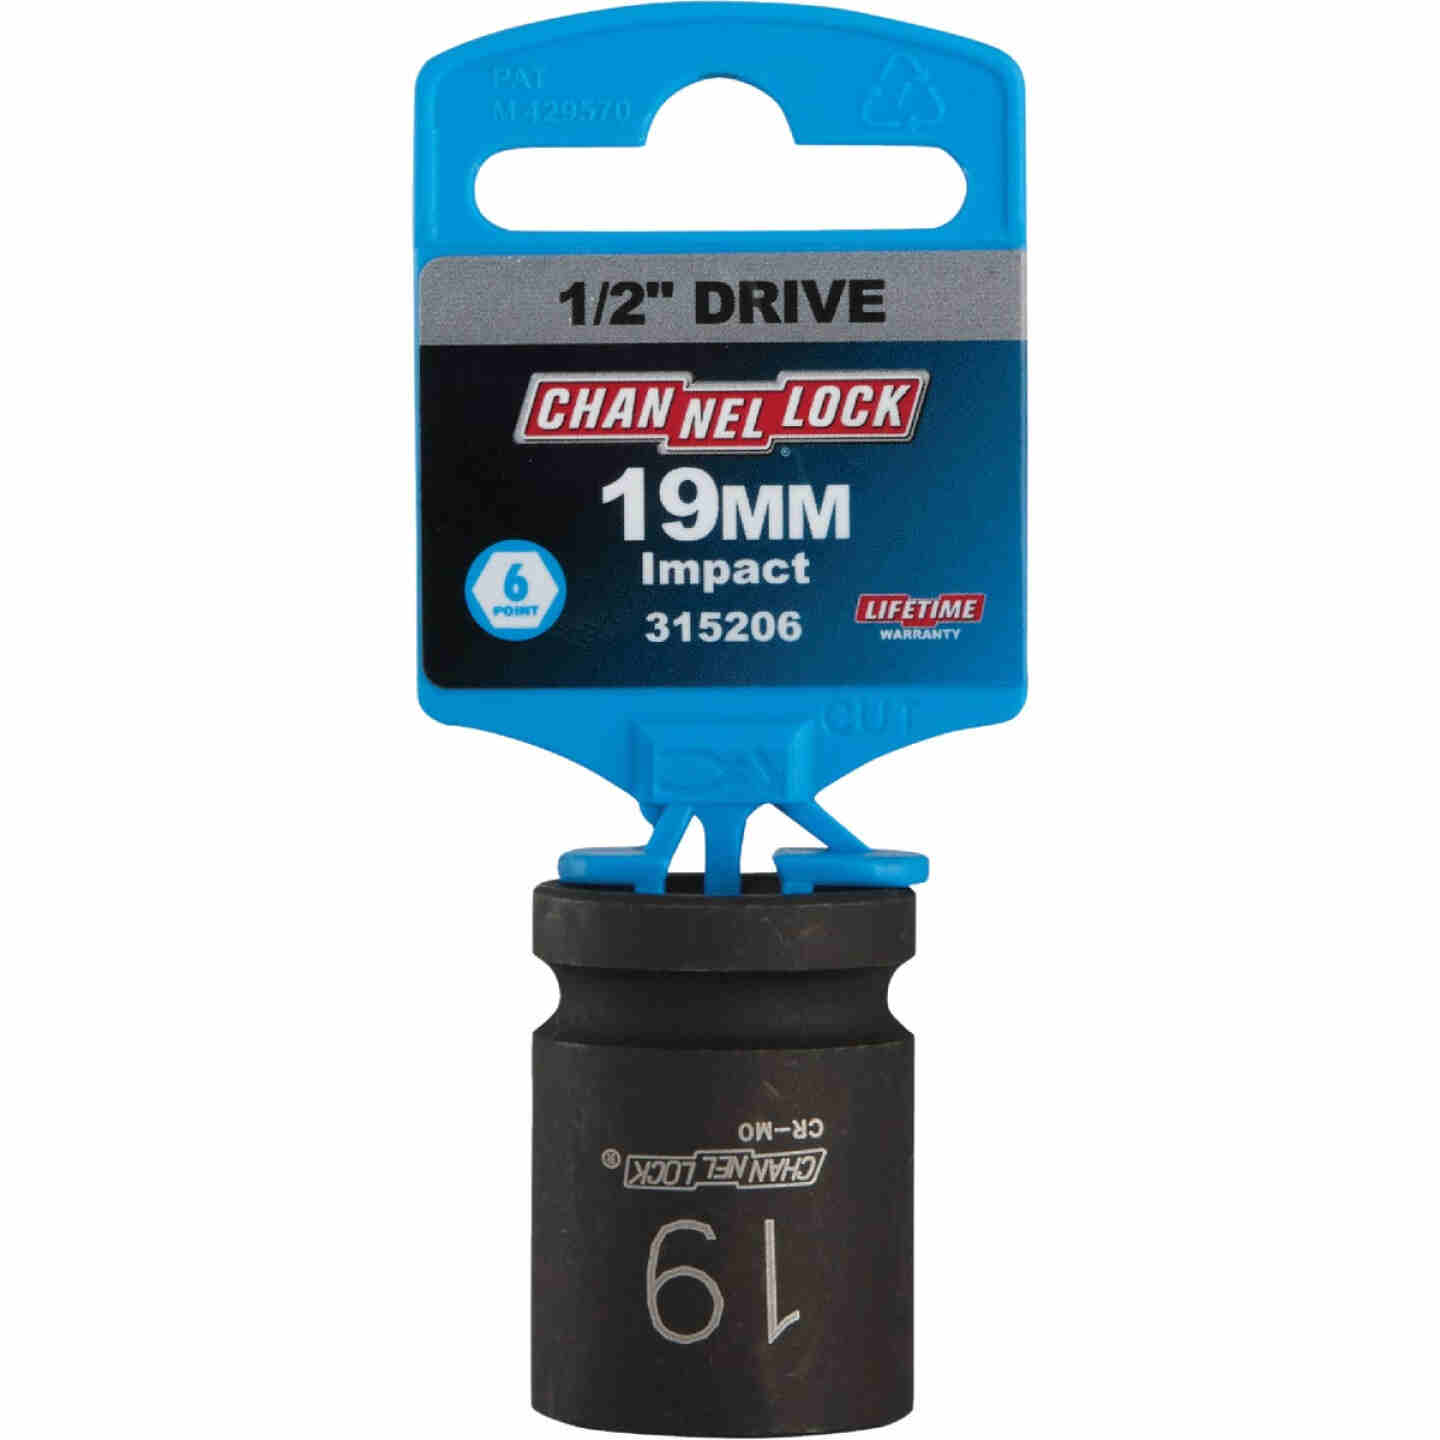 Channellock 1/2 In. Drive 19 mm 6-Point Shallow Metric Impact Socket Image 2